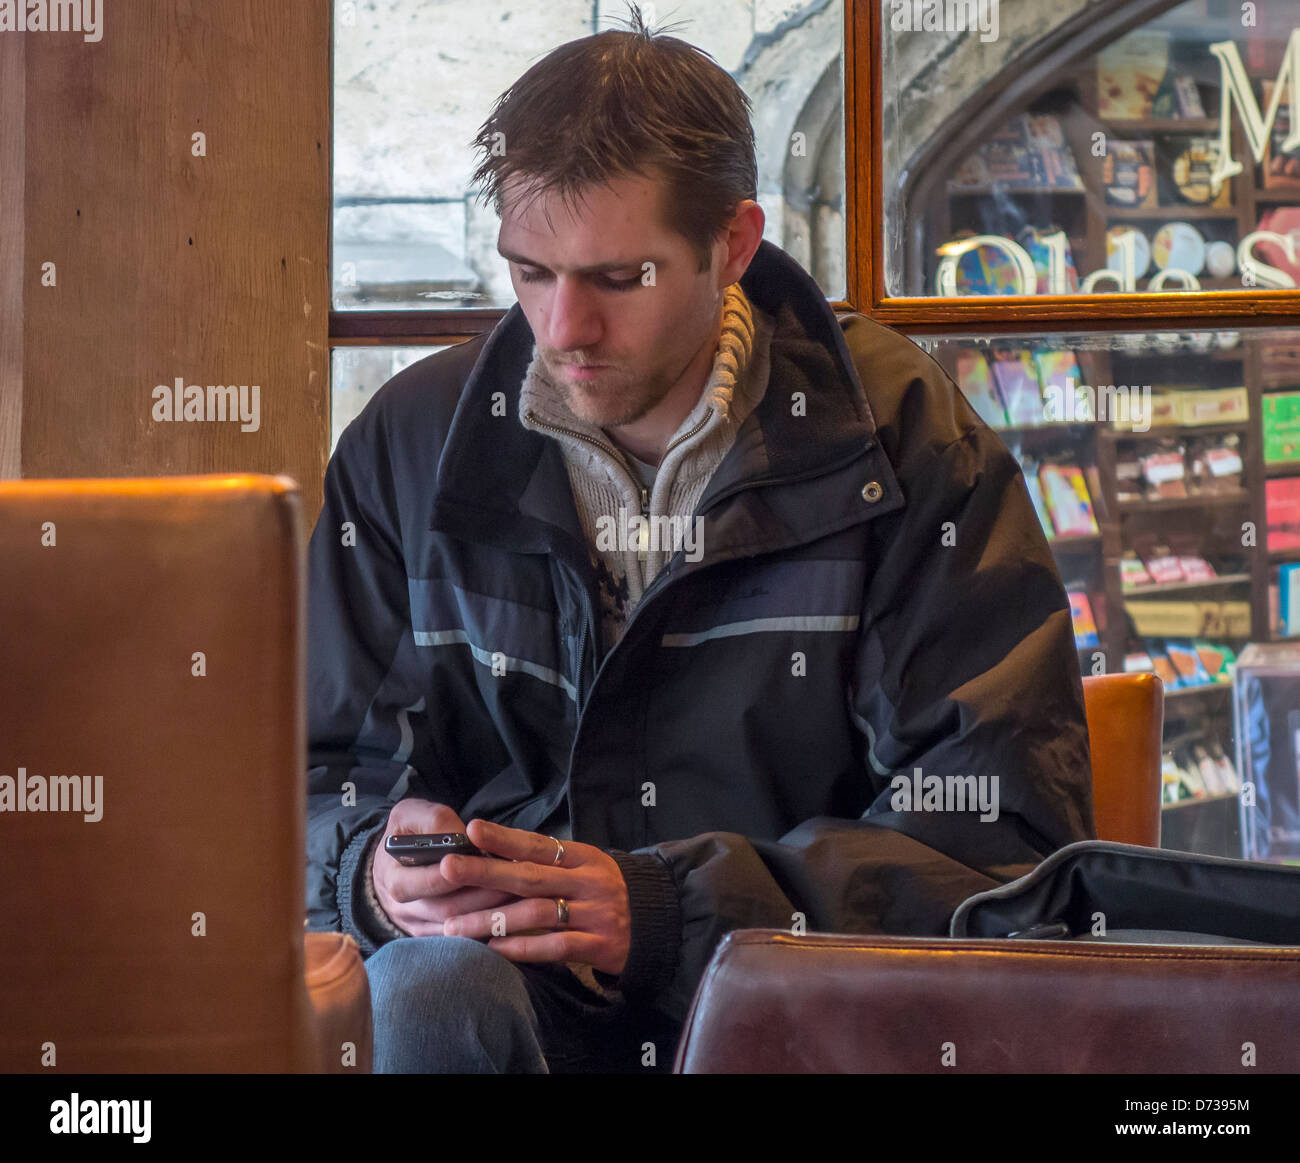 Man texting in coffee shop using mobile phone - Stock Image